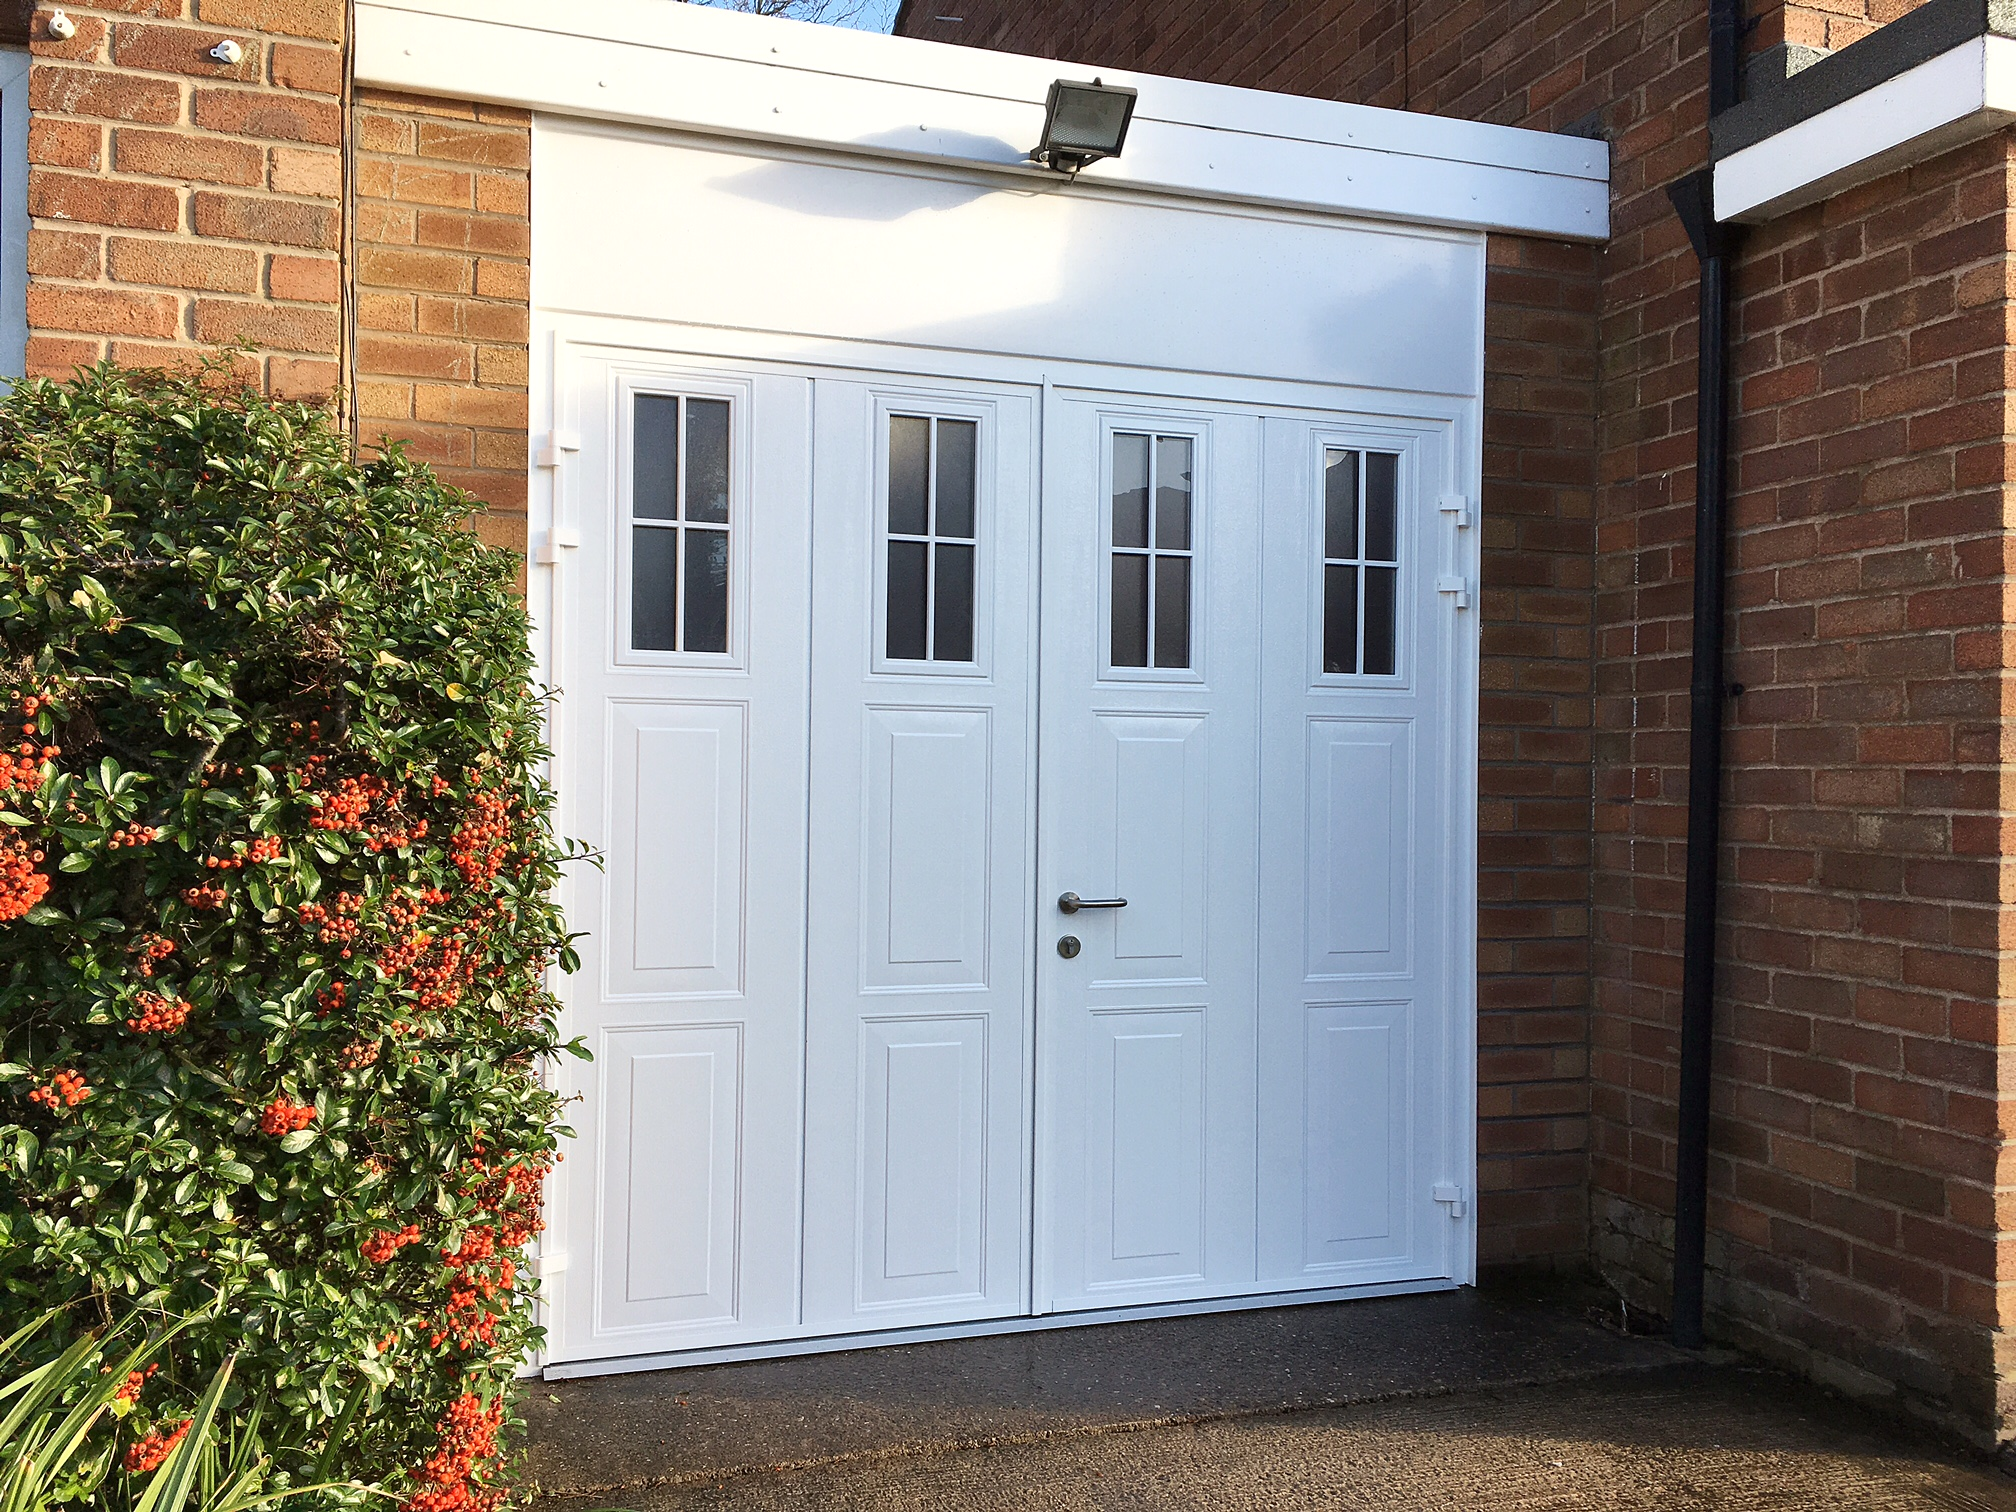 Carteck side hinged garage door pennine garage doors for Garage side entry door